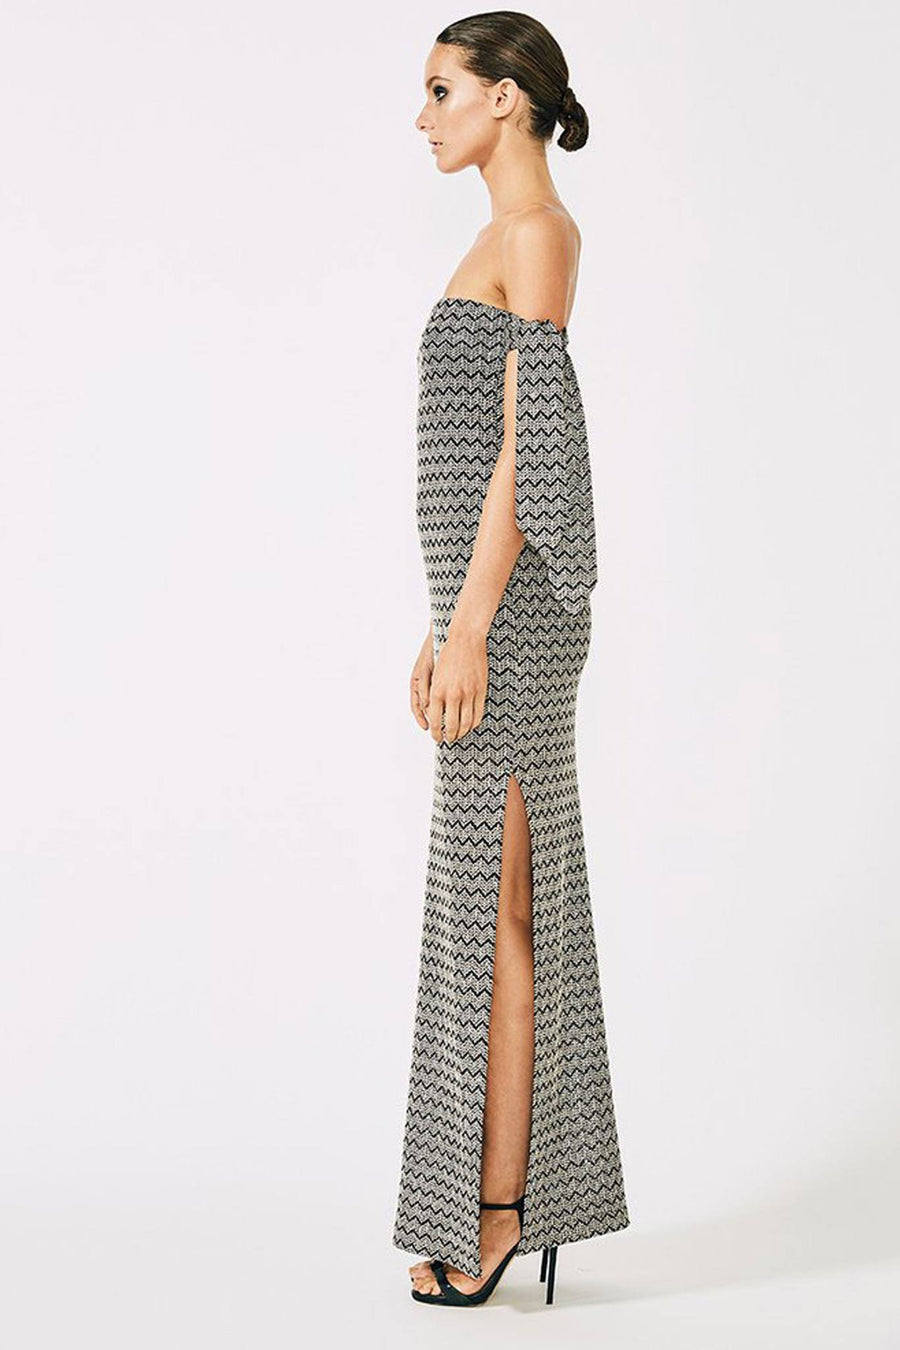 strapless-midi-dress-w-ties-danglars-by-shona-joy